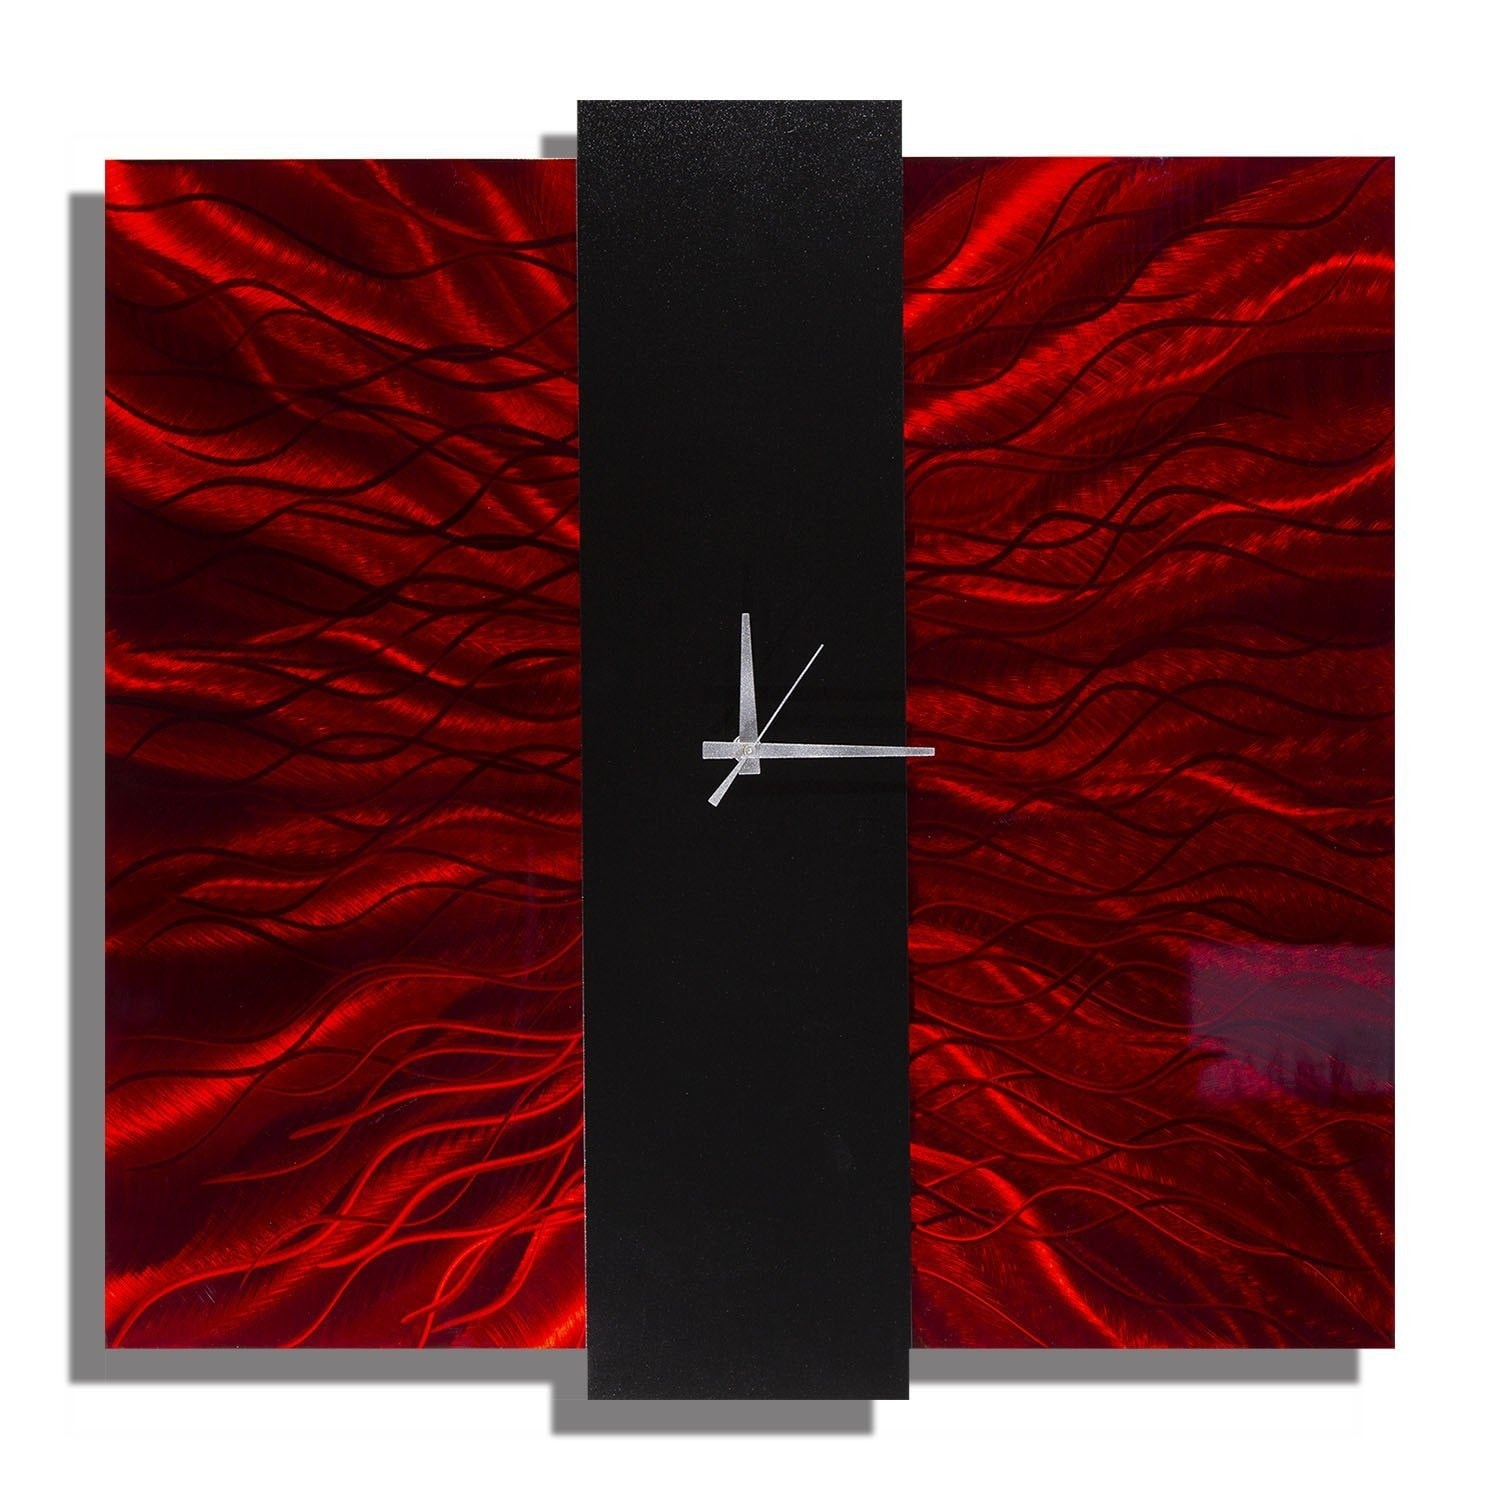 Statements2000 Red / Black Metal Wall Clock by Jon Allen - Lavish Mechanism - Thumbnail 0